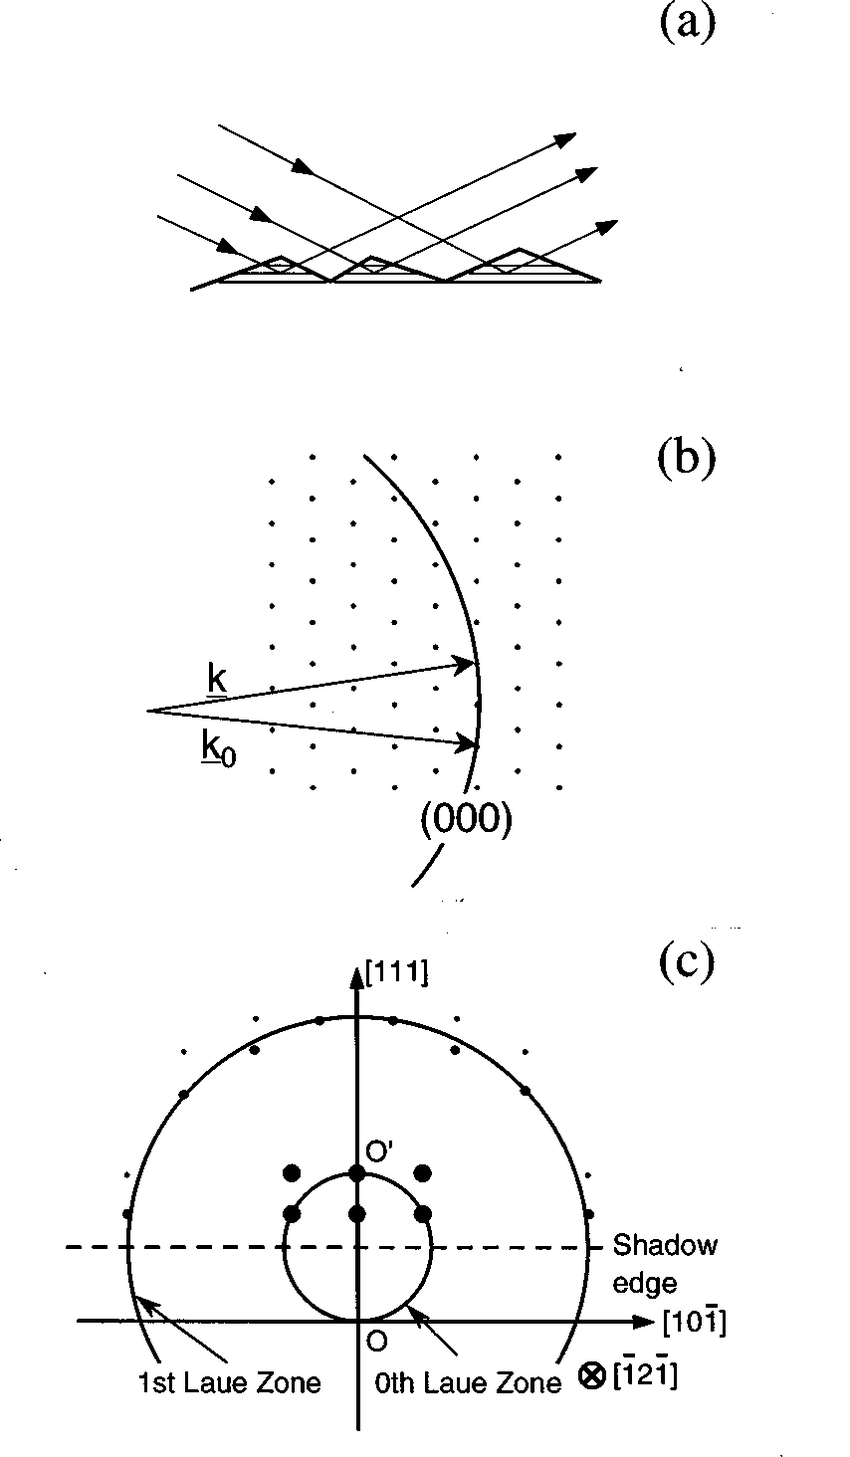 hight resolution of a schematic drawing of a rough surface model of a diamond 111 b ewald